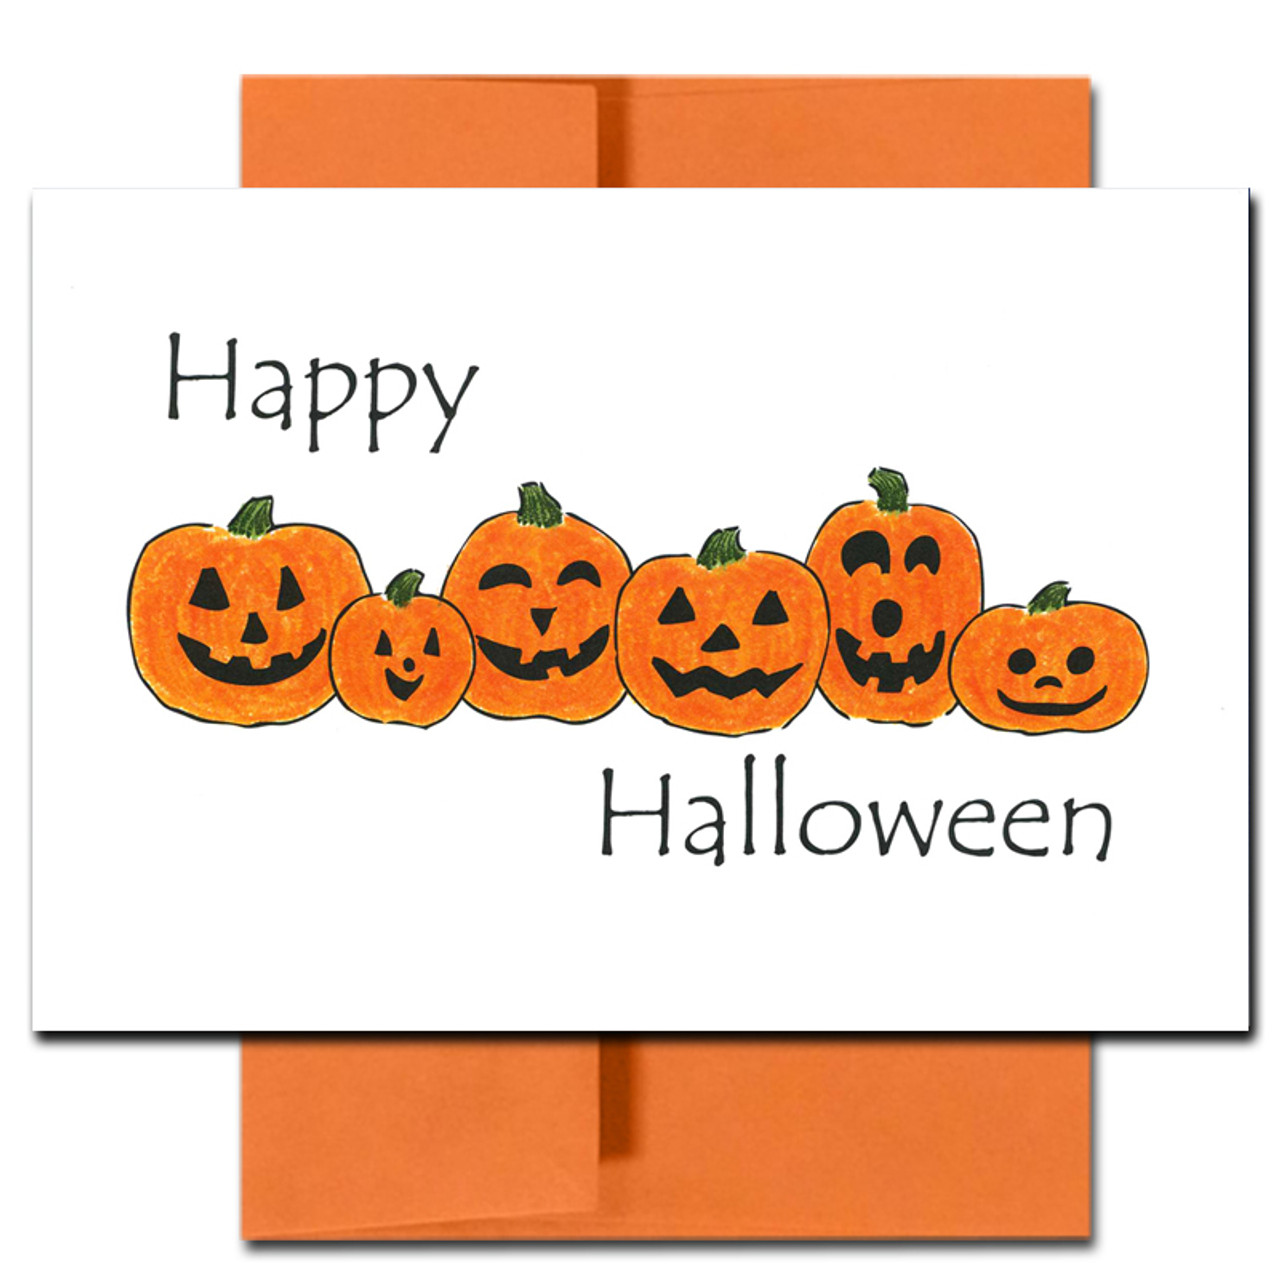 Cover of Pumpkin Patch Halloween Card shows a line up of happy-faced jack-o-lanterns